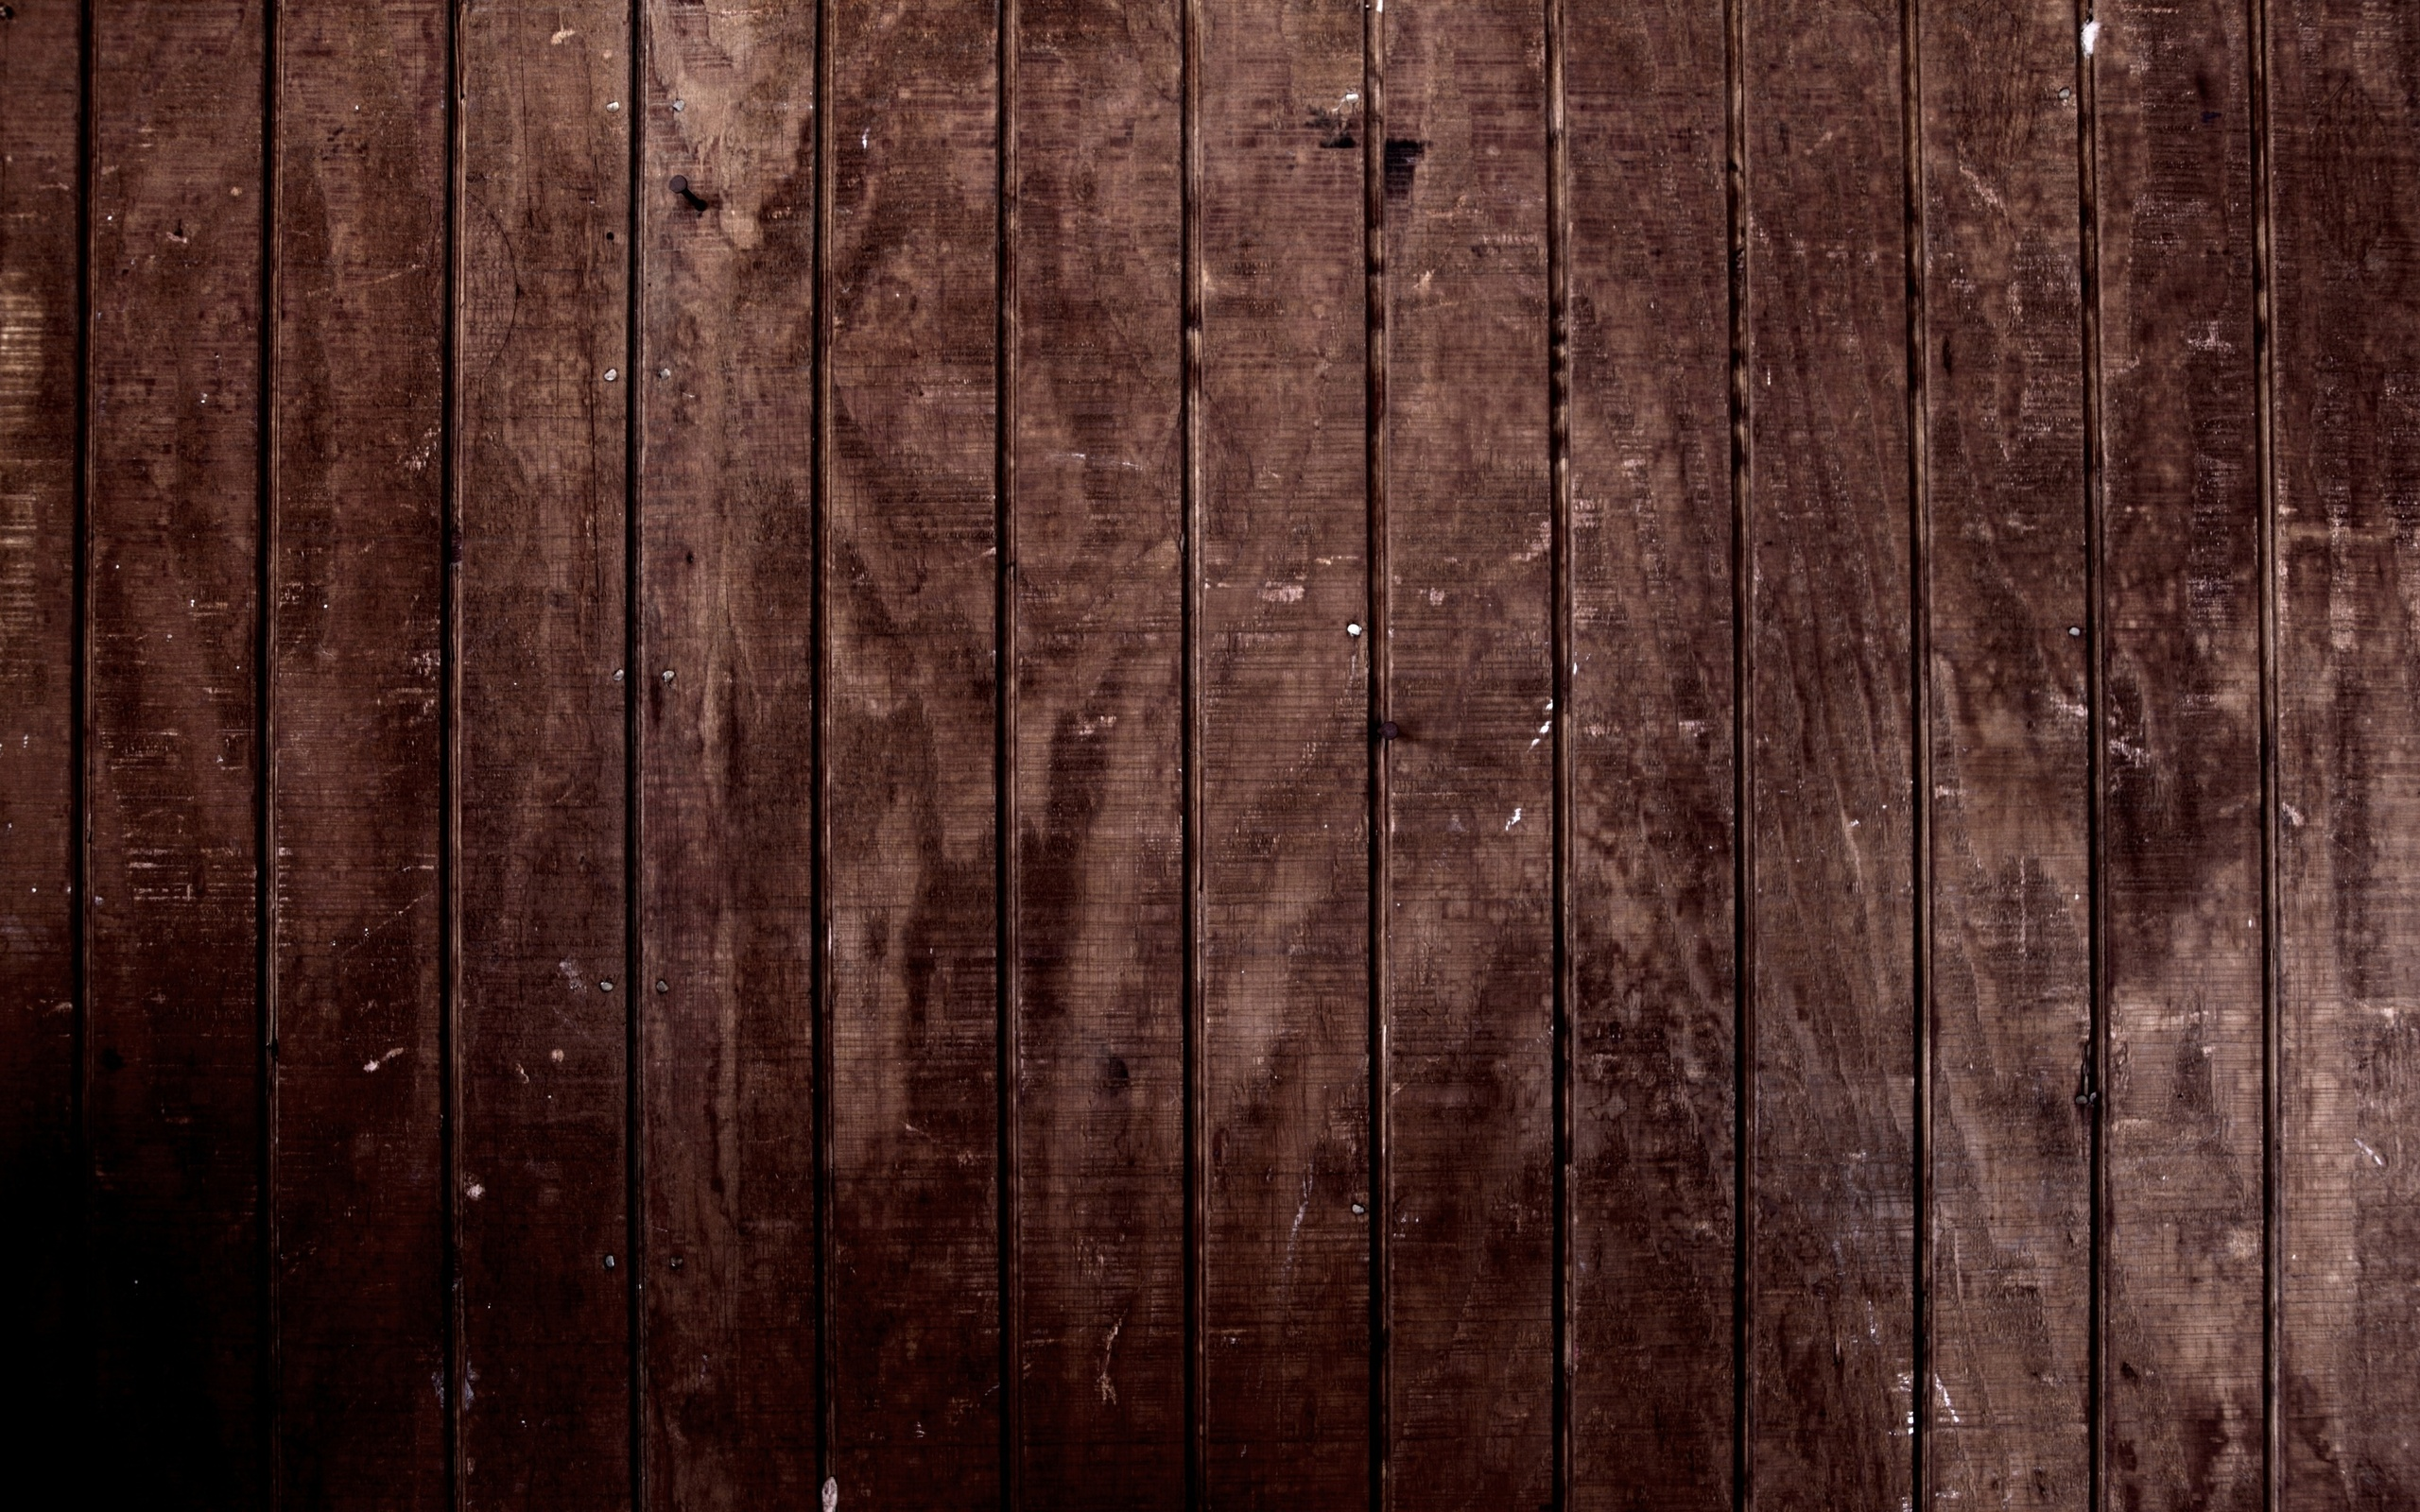 wood wallpapers archives - page 4 of 5